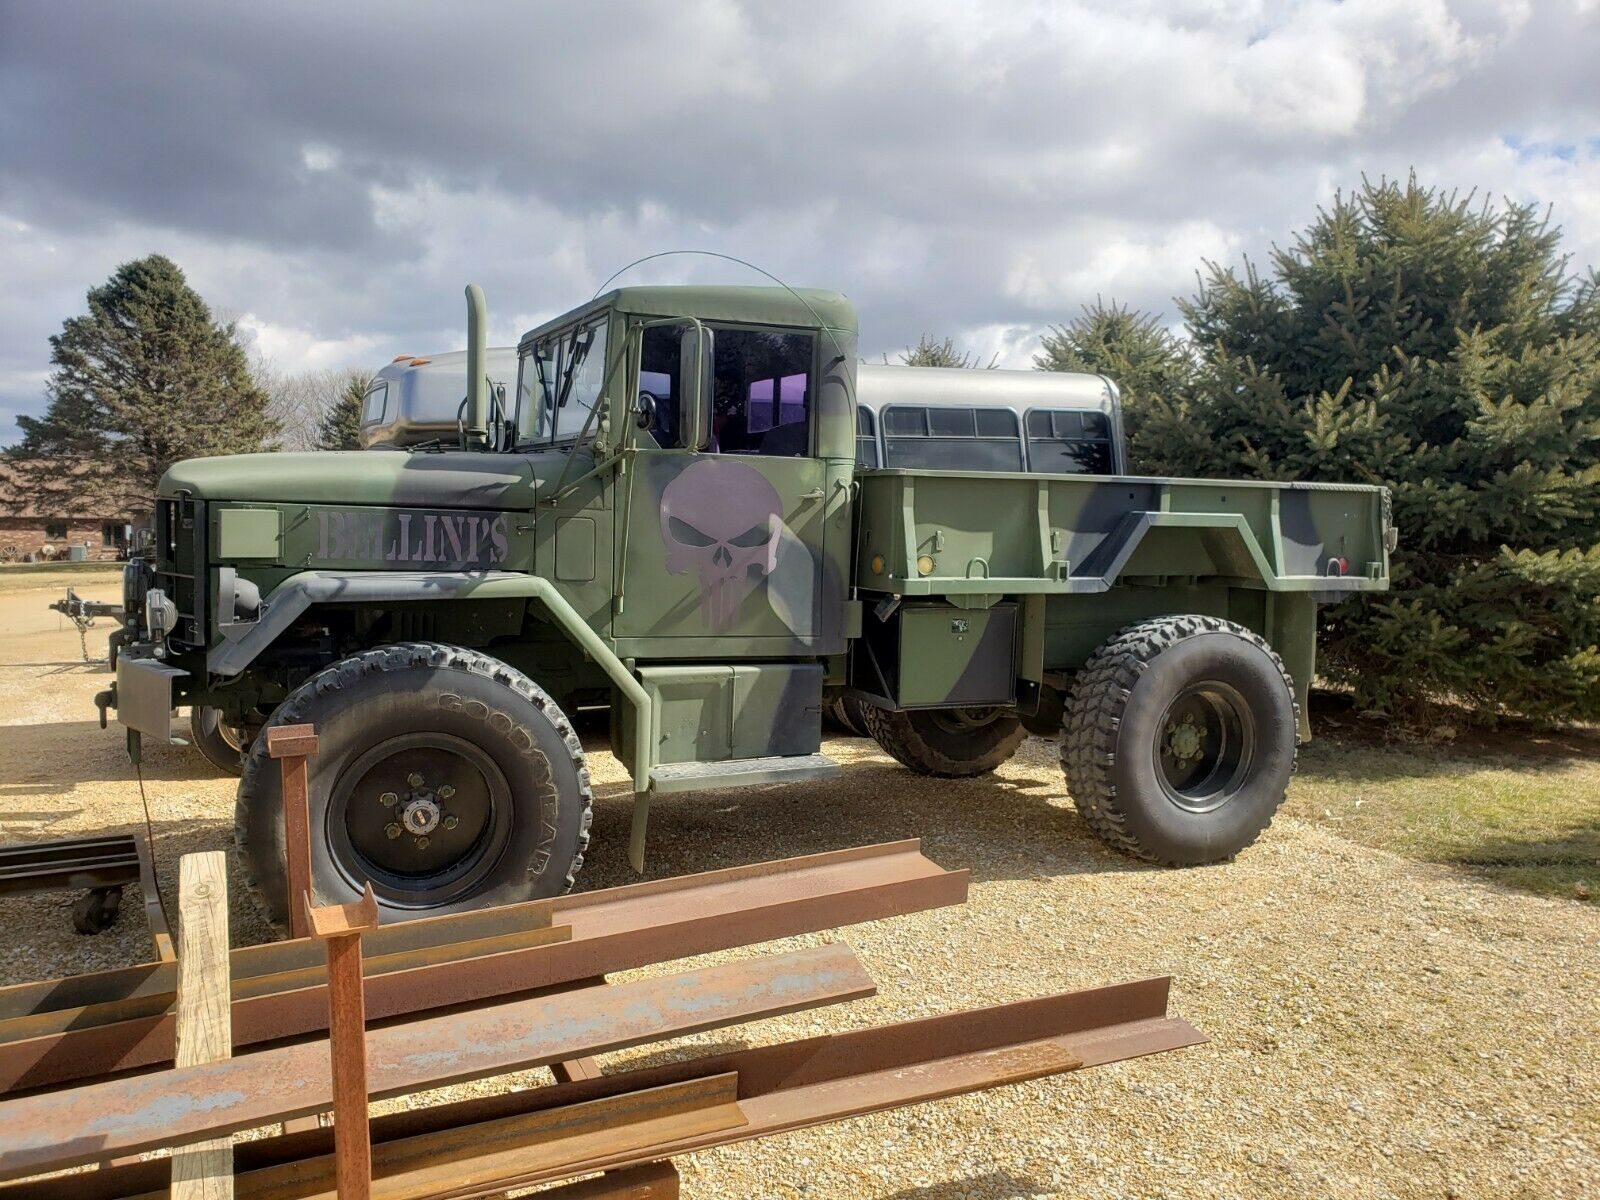 bobbed 1971 AM General M35A2 military